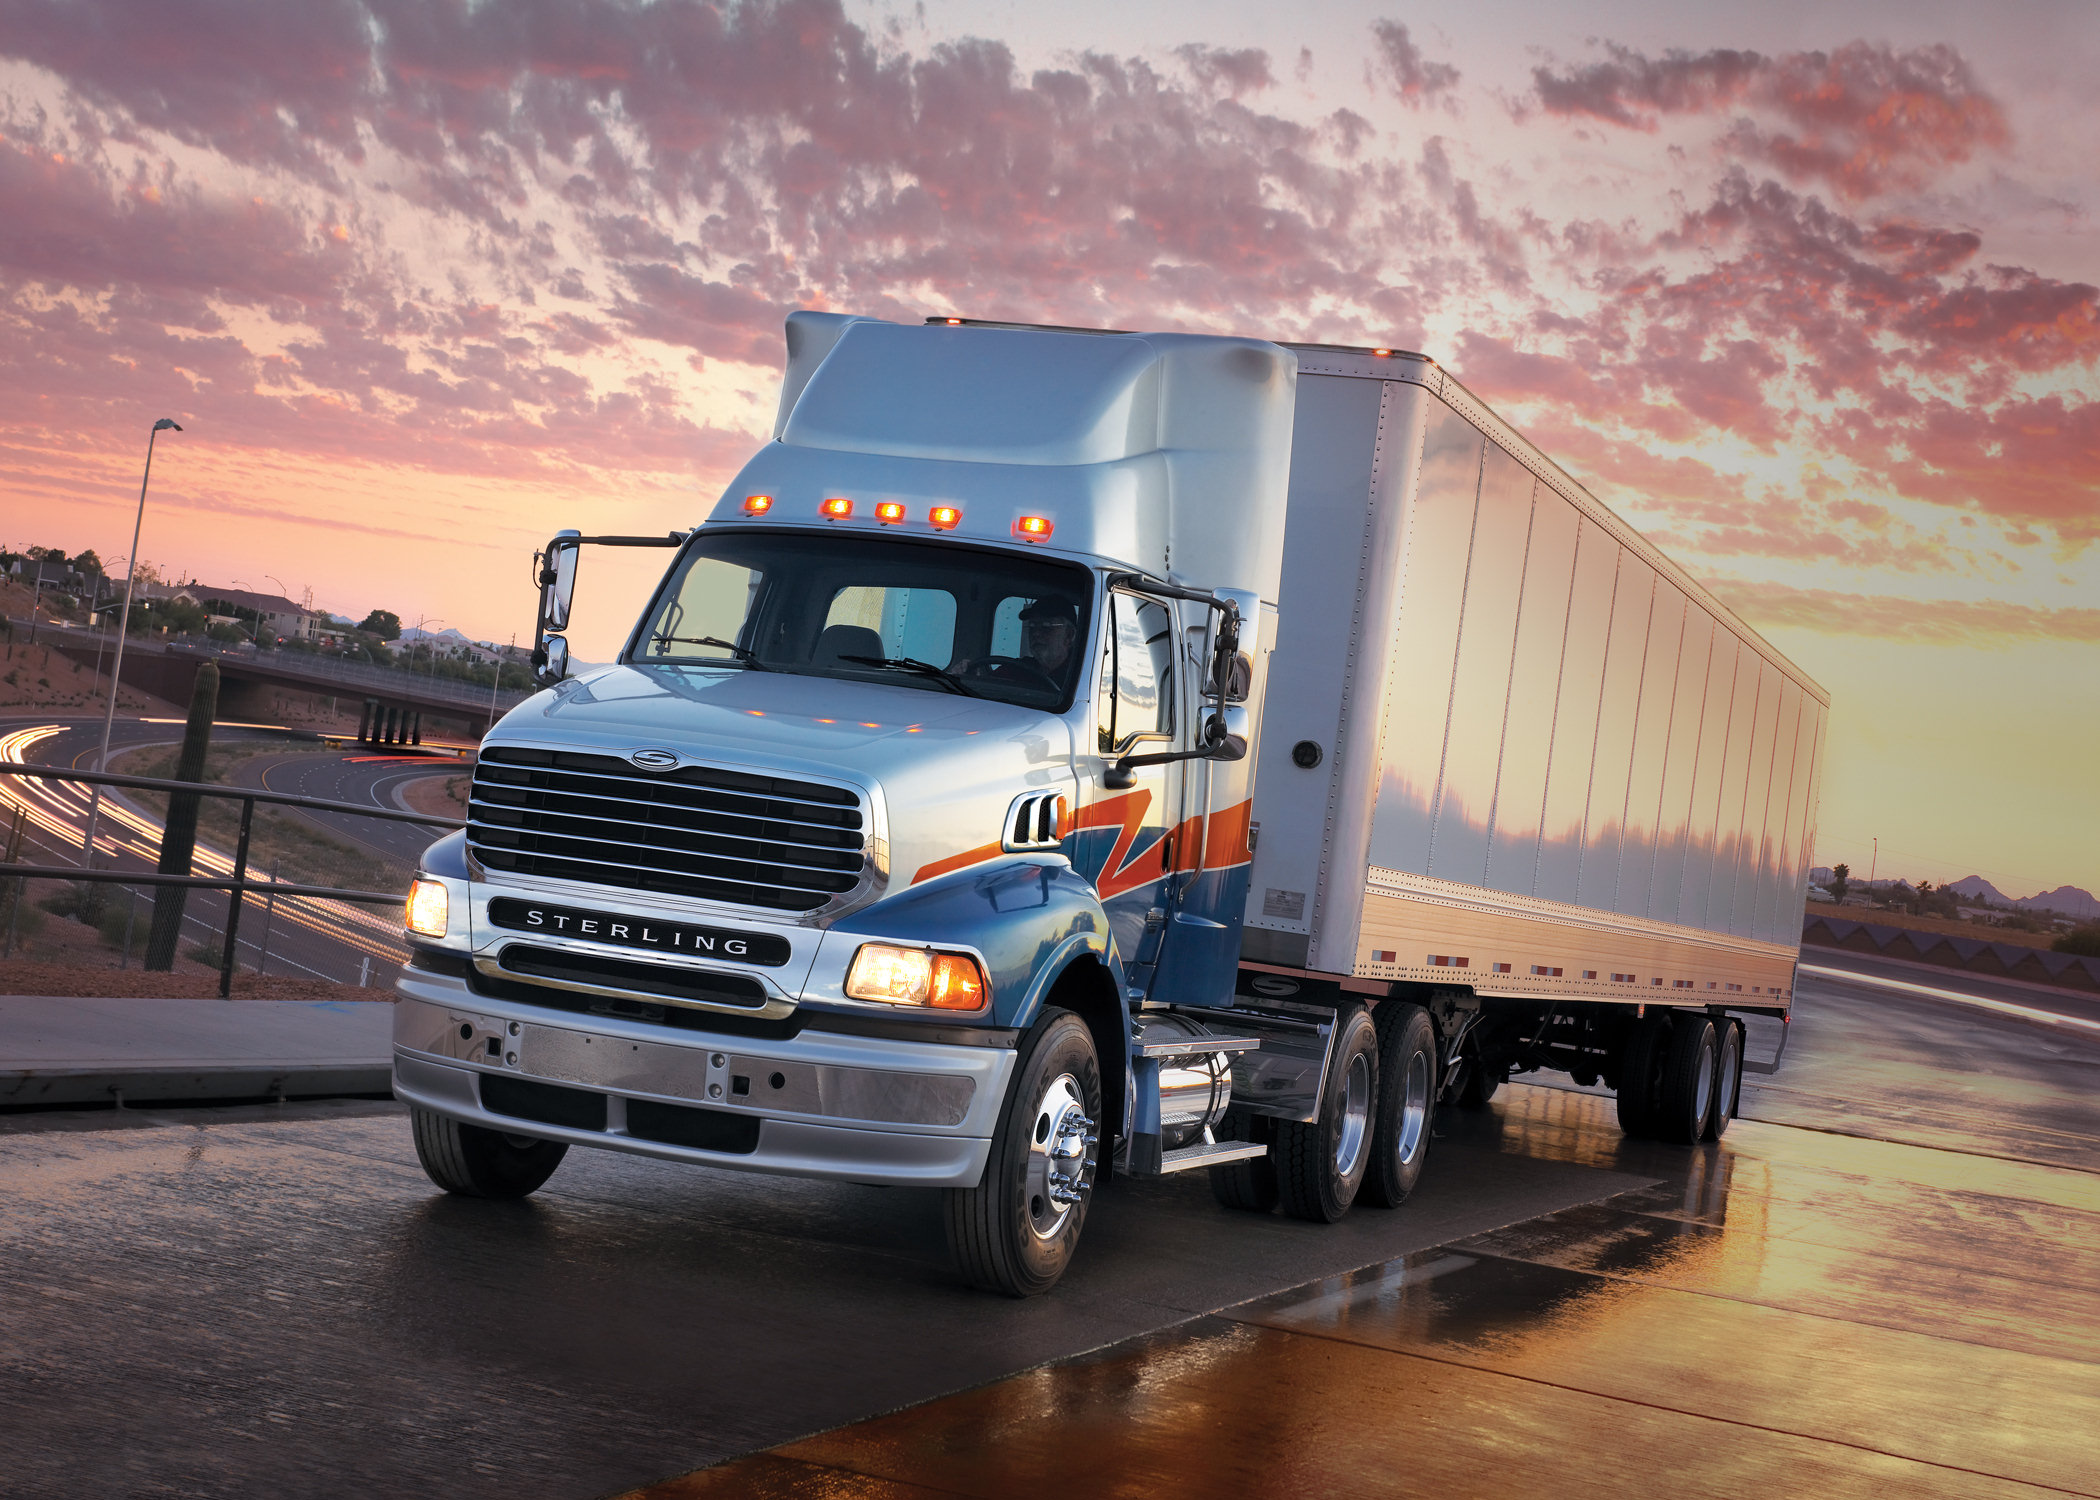 301 Truck HD Wallpapers | Backgrounds - Wallpaper Abyss